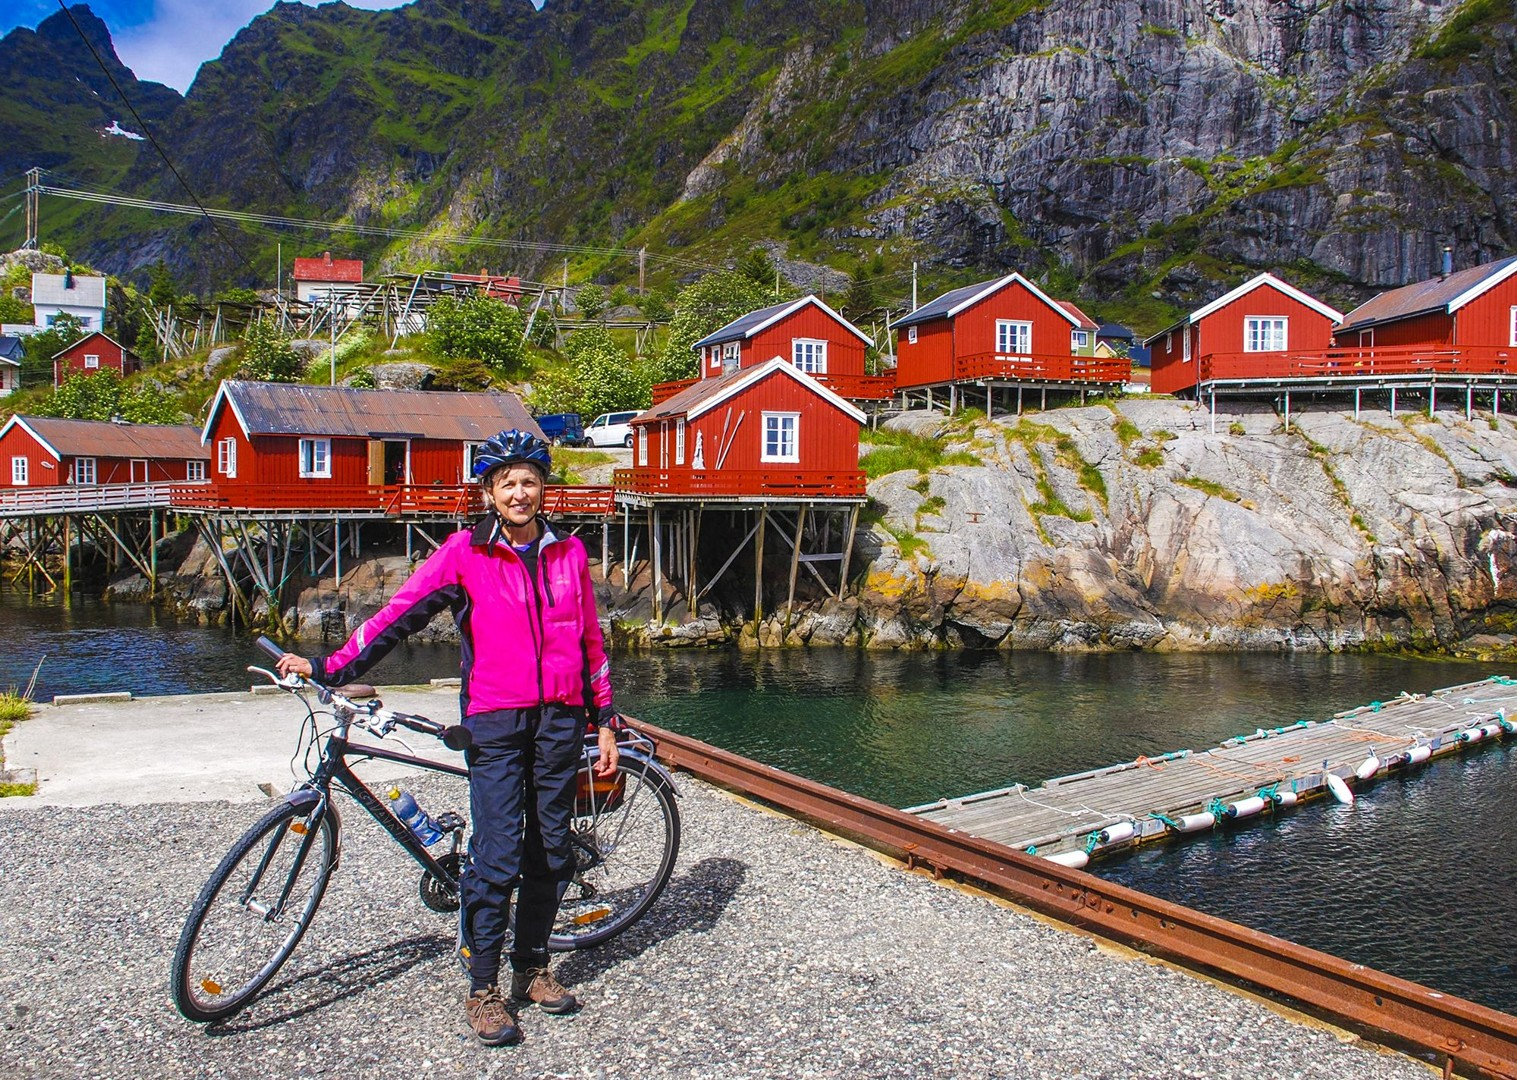 happy-leisure-cycling-journey-through-norway-local-accommodations.jpg - Norway - Lofoten Islands - Self-Guided Leisure Cycling Holiday - Leisure Cycling